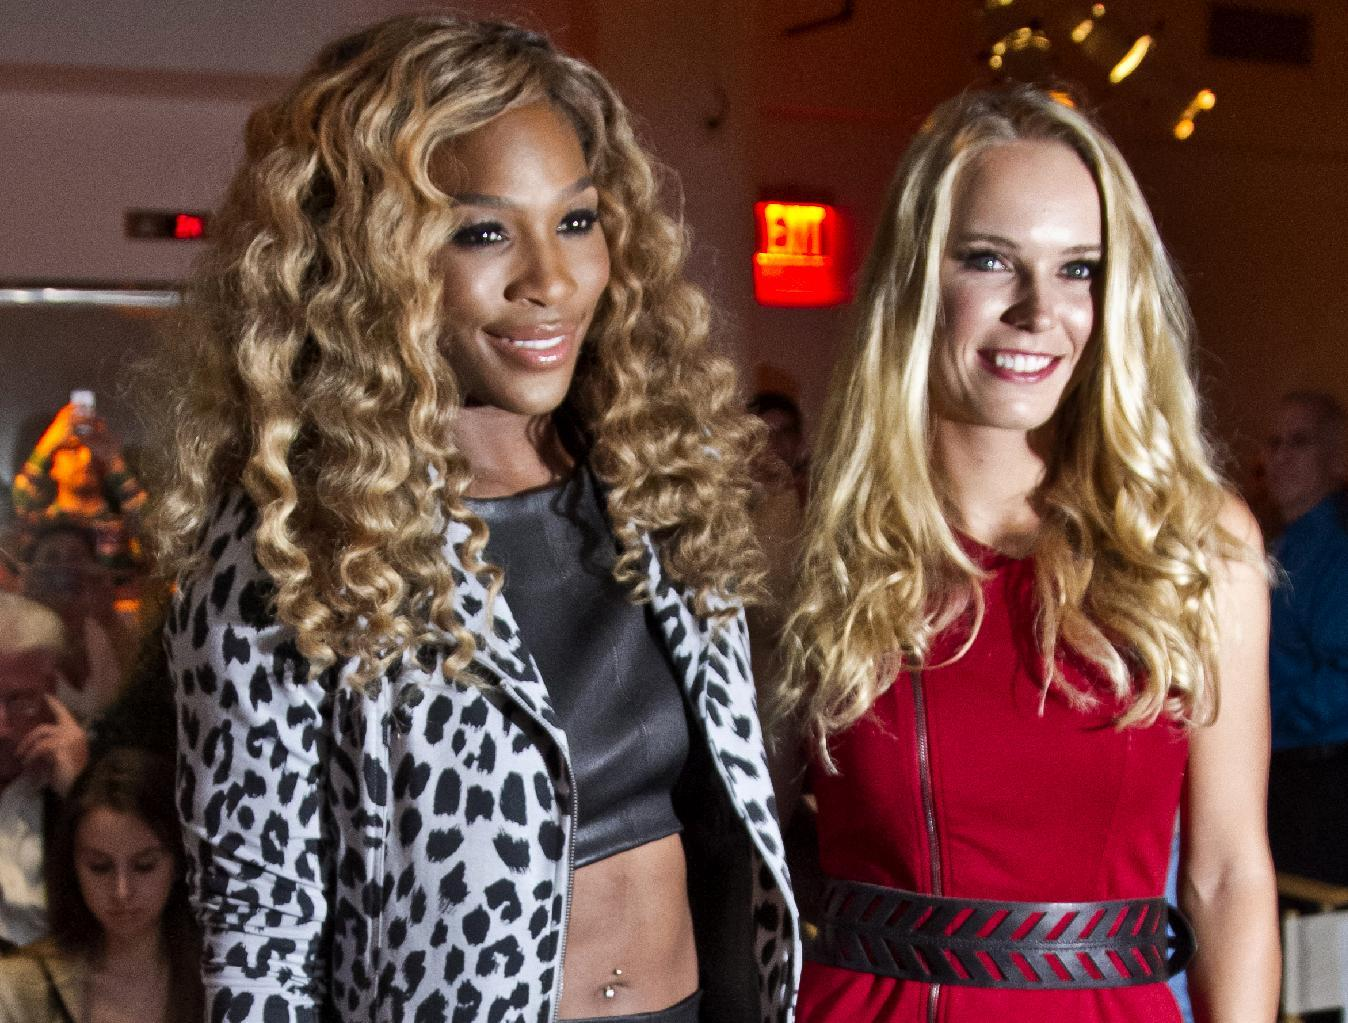 'Mean Girls' it's not but some players scoff at friendships